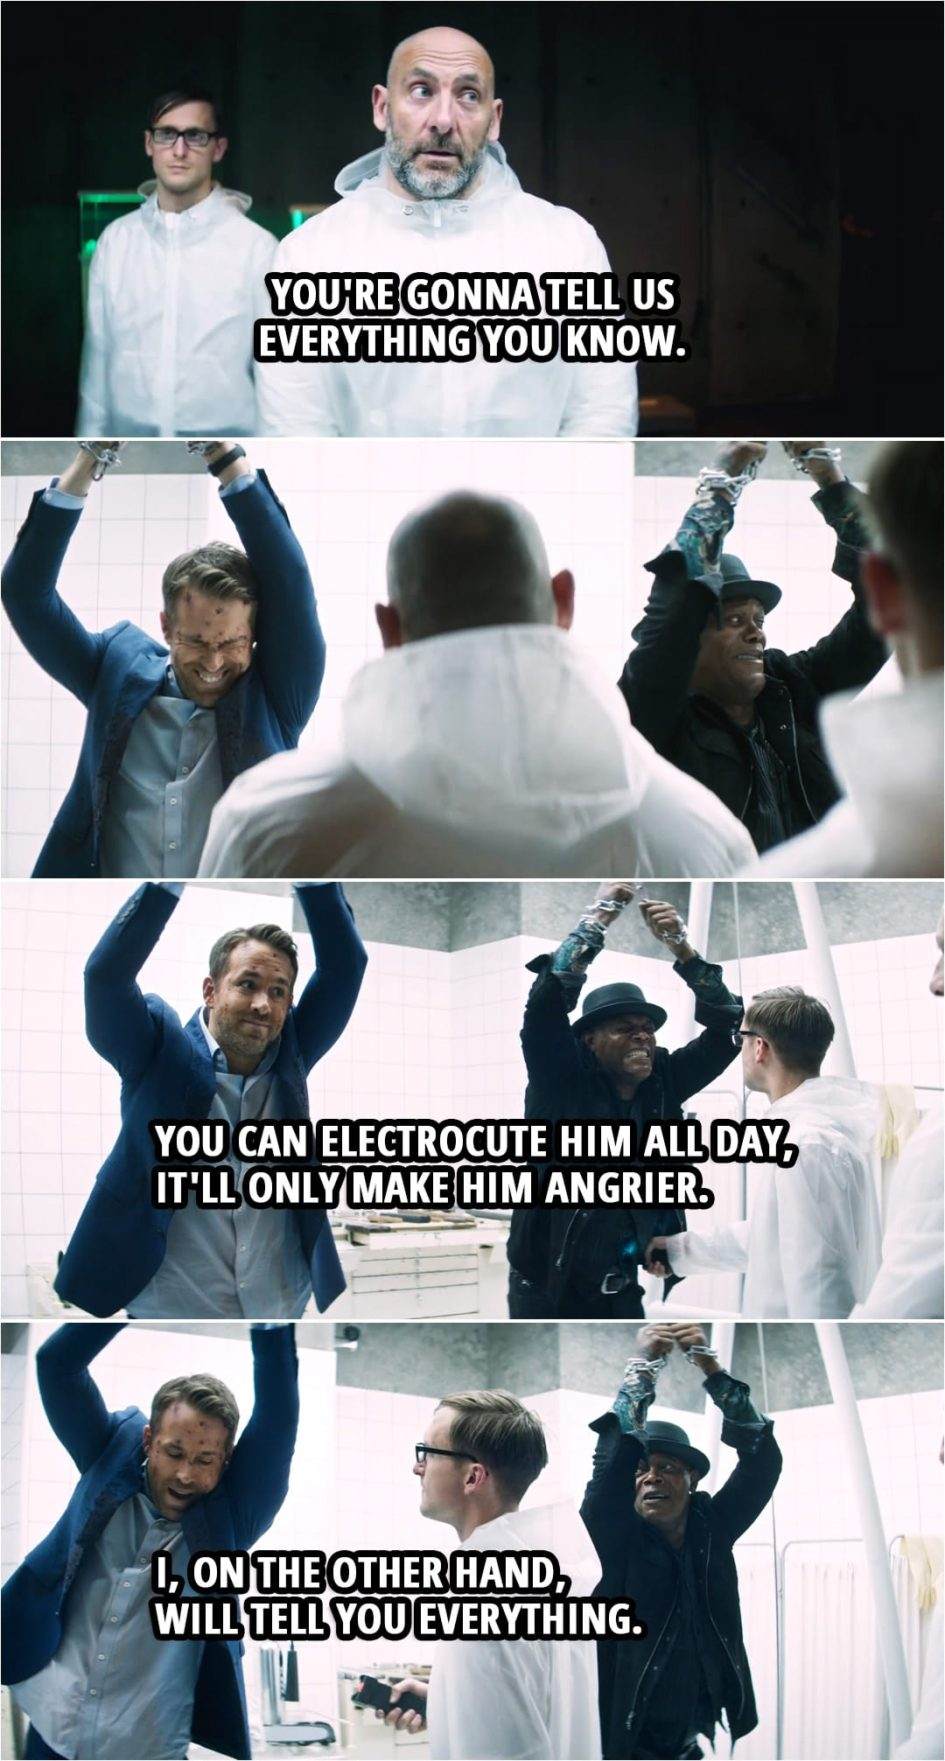 Quote from Hitman's Wife's Bodyguard (2021) | Bad guy: You're gonna tell us everything you know. Darius Kincaid: I'm not telling you sh--! Aahh!! (gets tased) Michael Bryce: You can electrocute him all day, it'll only make him angrier. (guy with a taser gets closer to Bryce...) I, on the other hand, will tell you everything. Darius Kincaid: What, really?